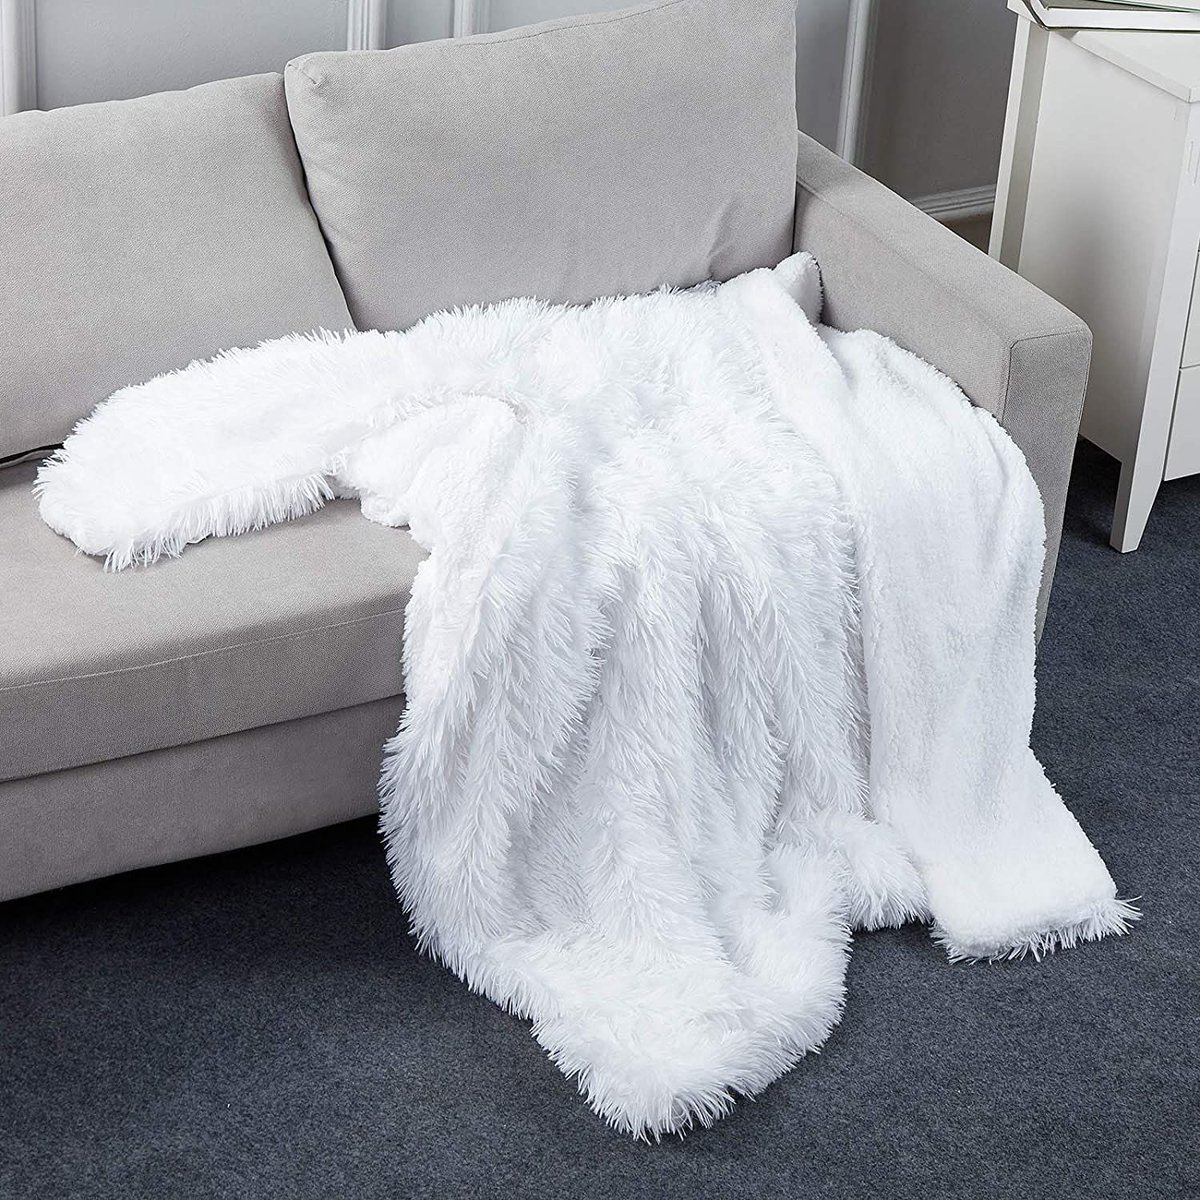 ad: $10  (50% off)  Faux Fur Shaggy Throw Blanket   Link0 Link0